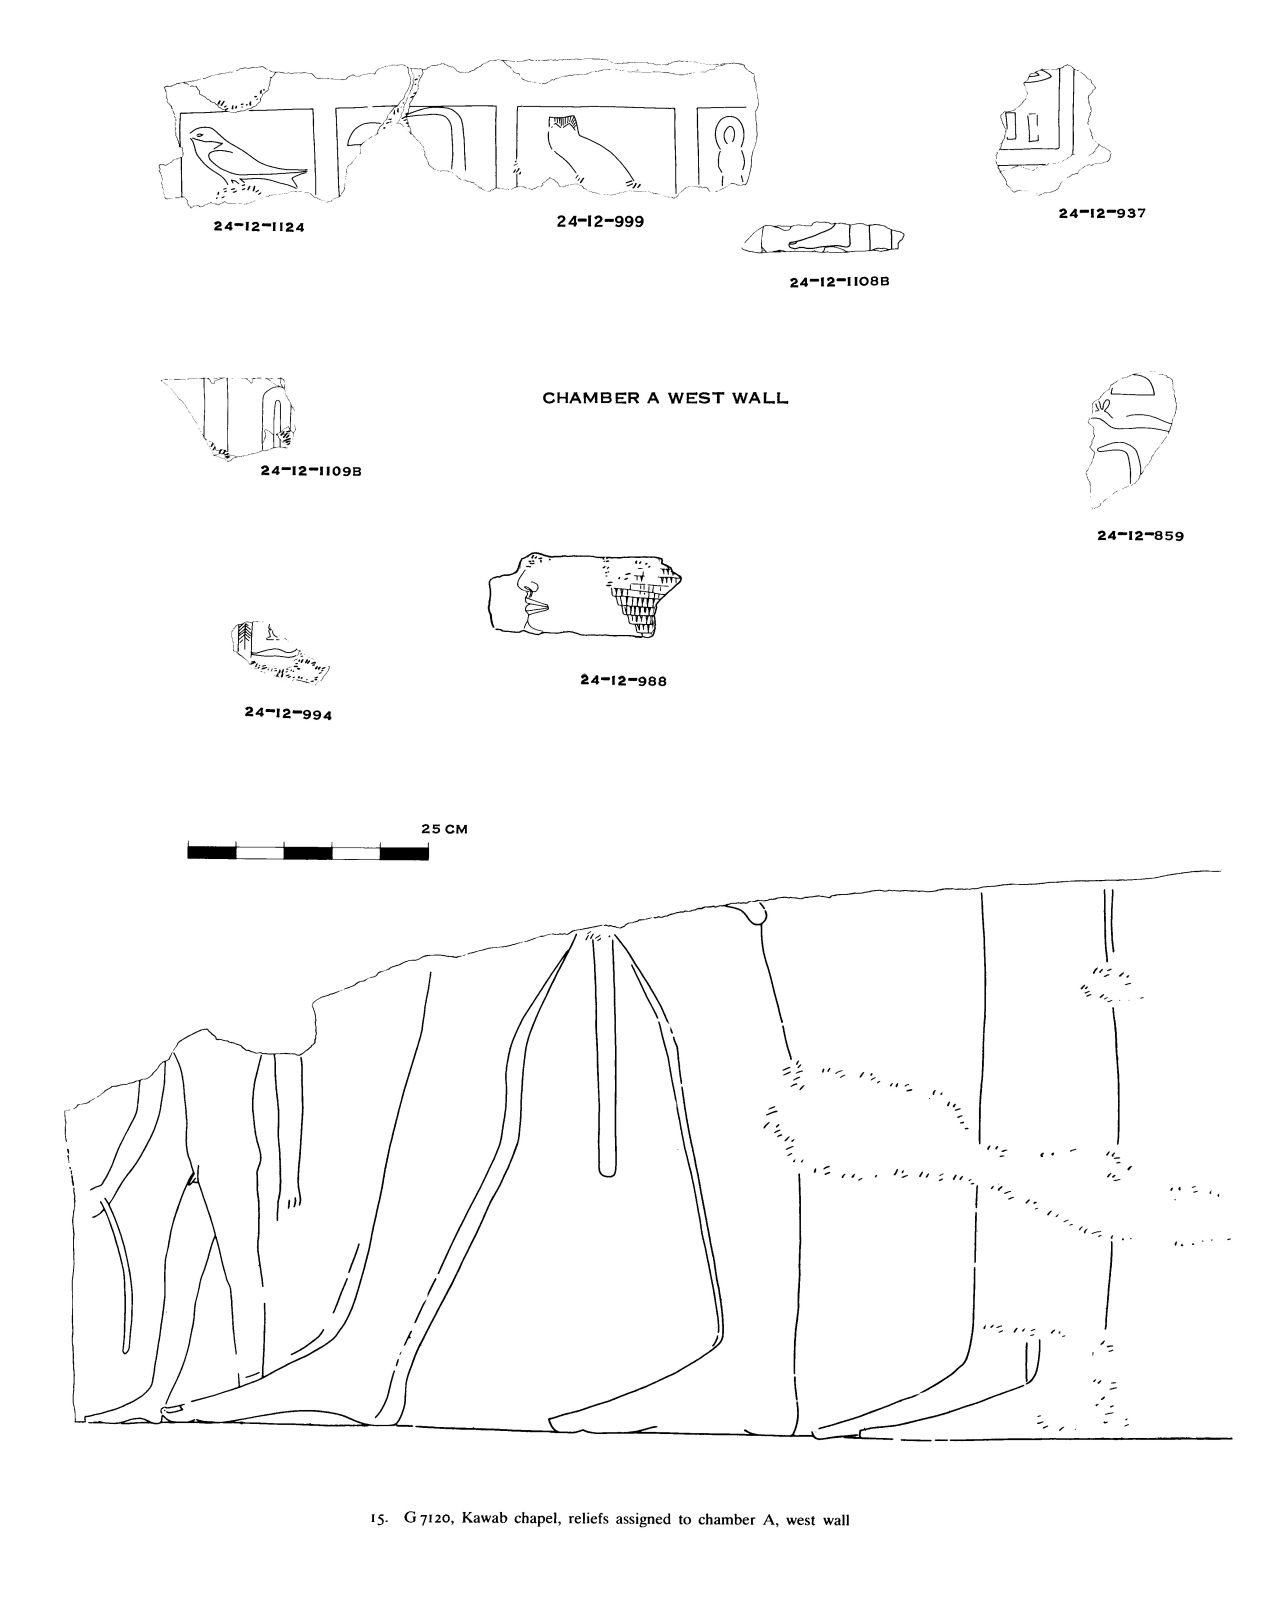 Drawings: G 7120: relief assigned to chamber B, E wall